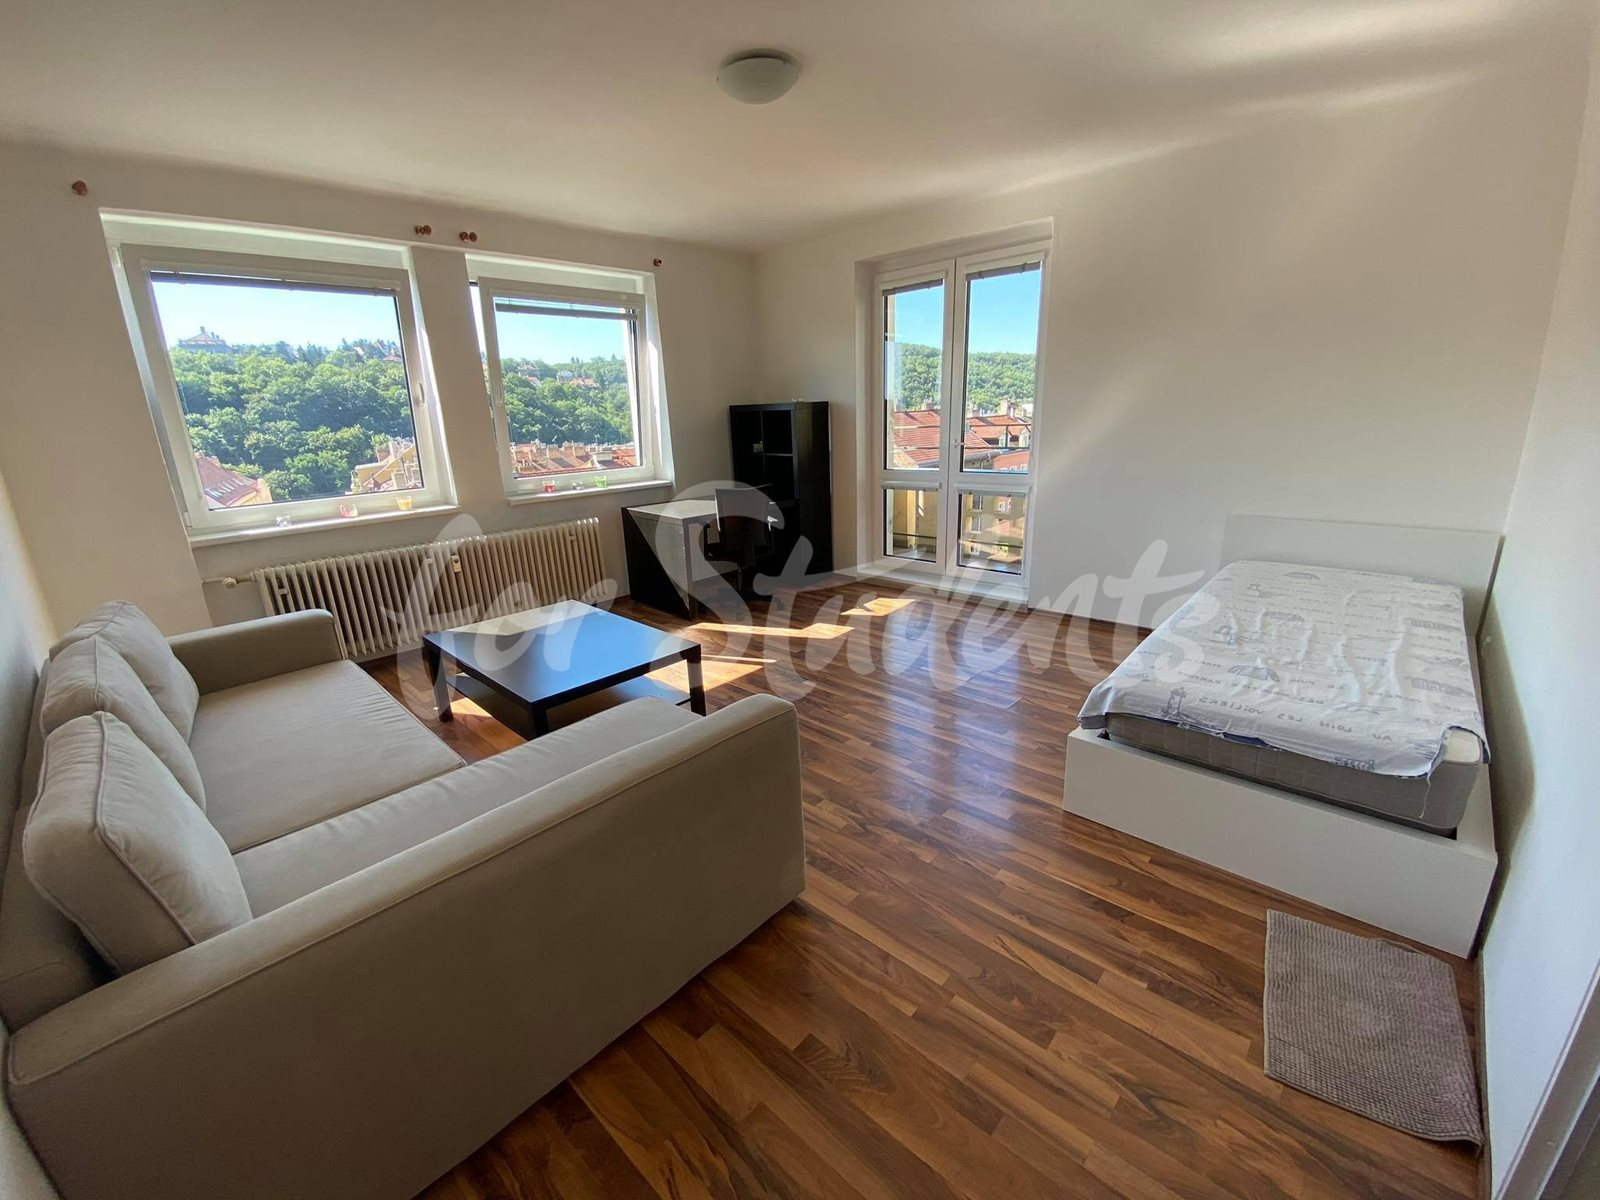 Two bedroom apartment in Holečkova street, Prague